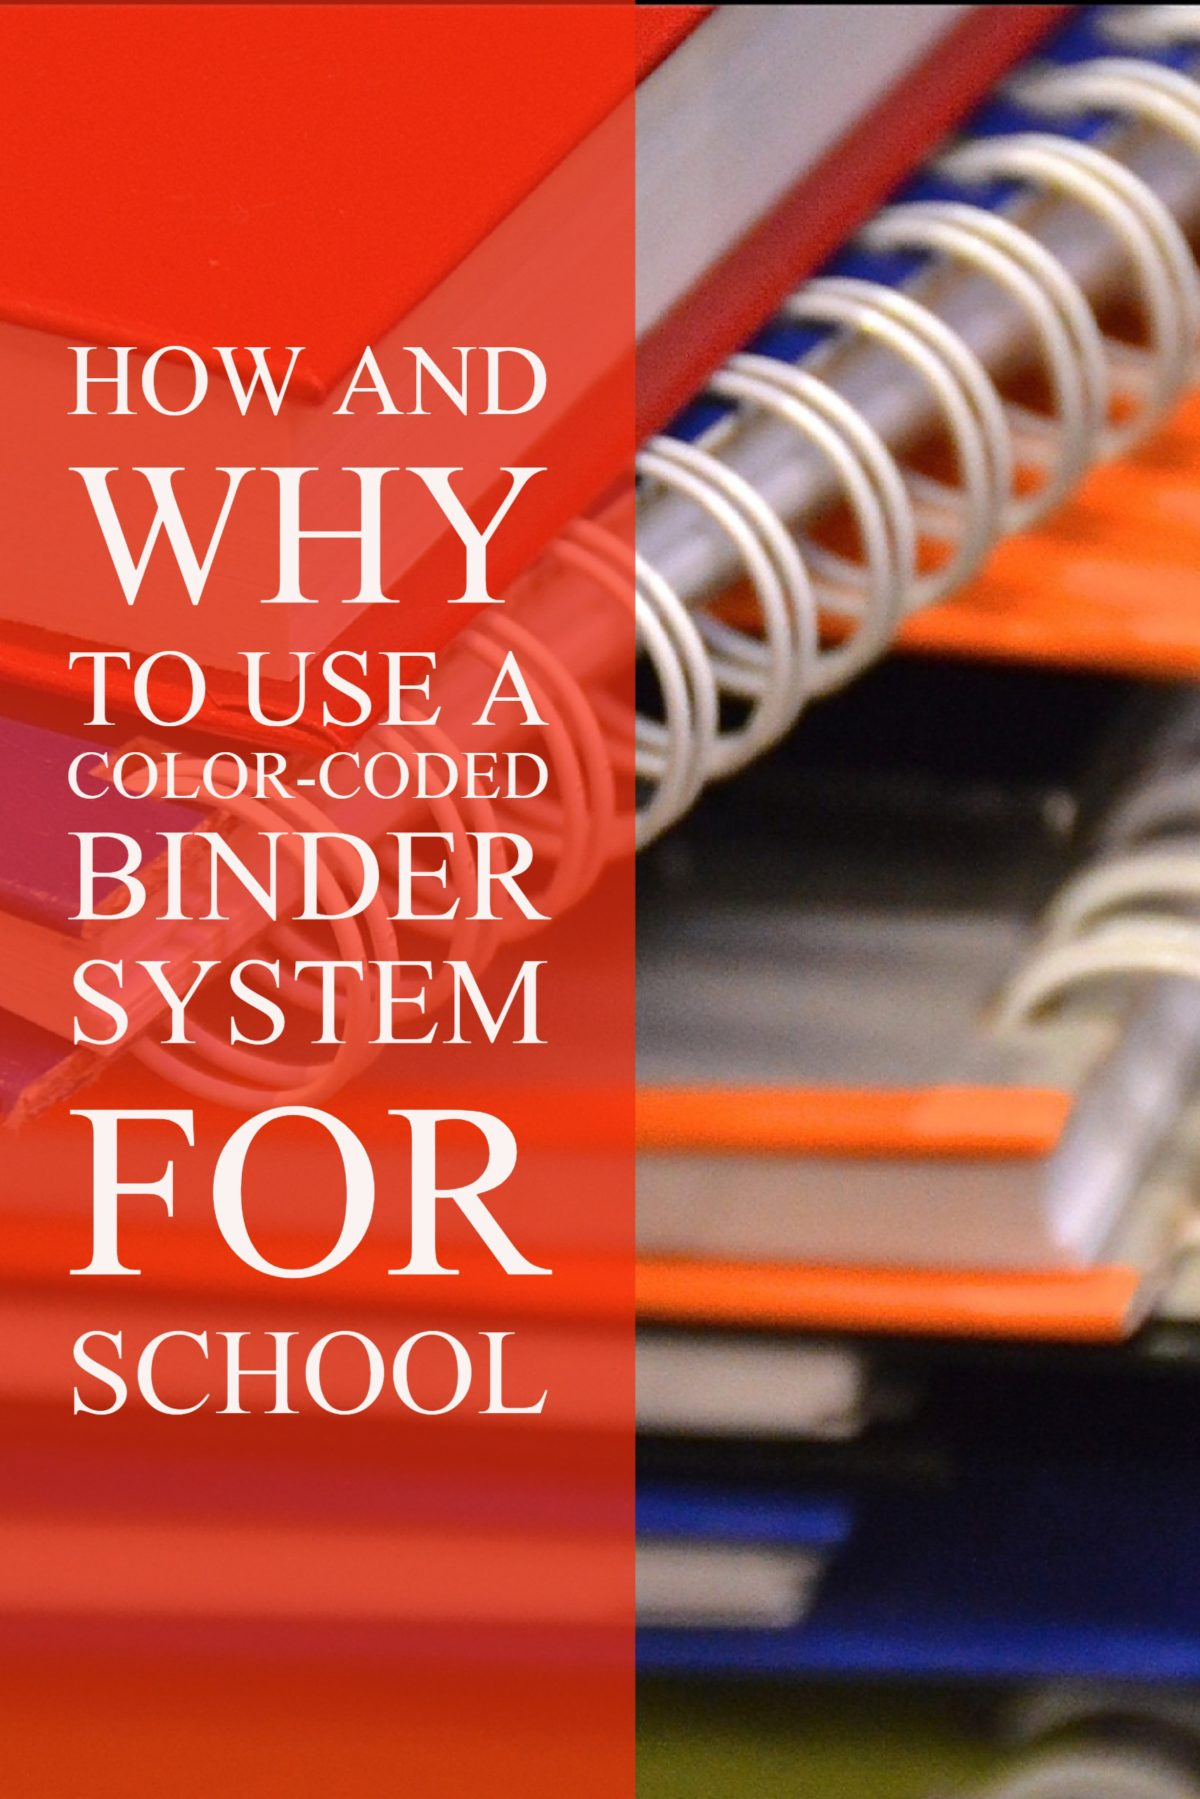 How and Why to Use a Color-Coded Binder System